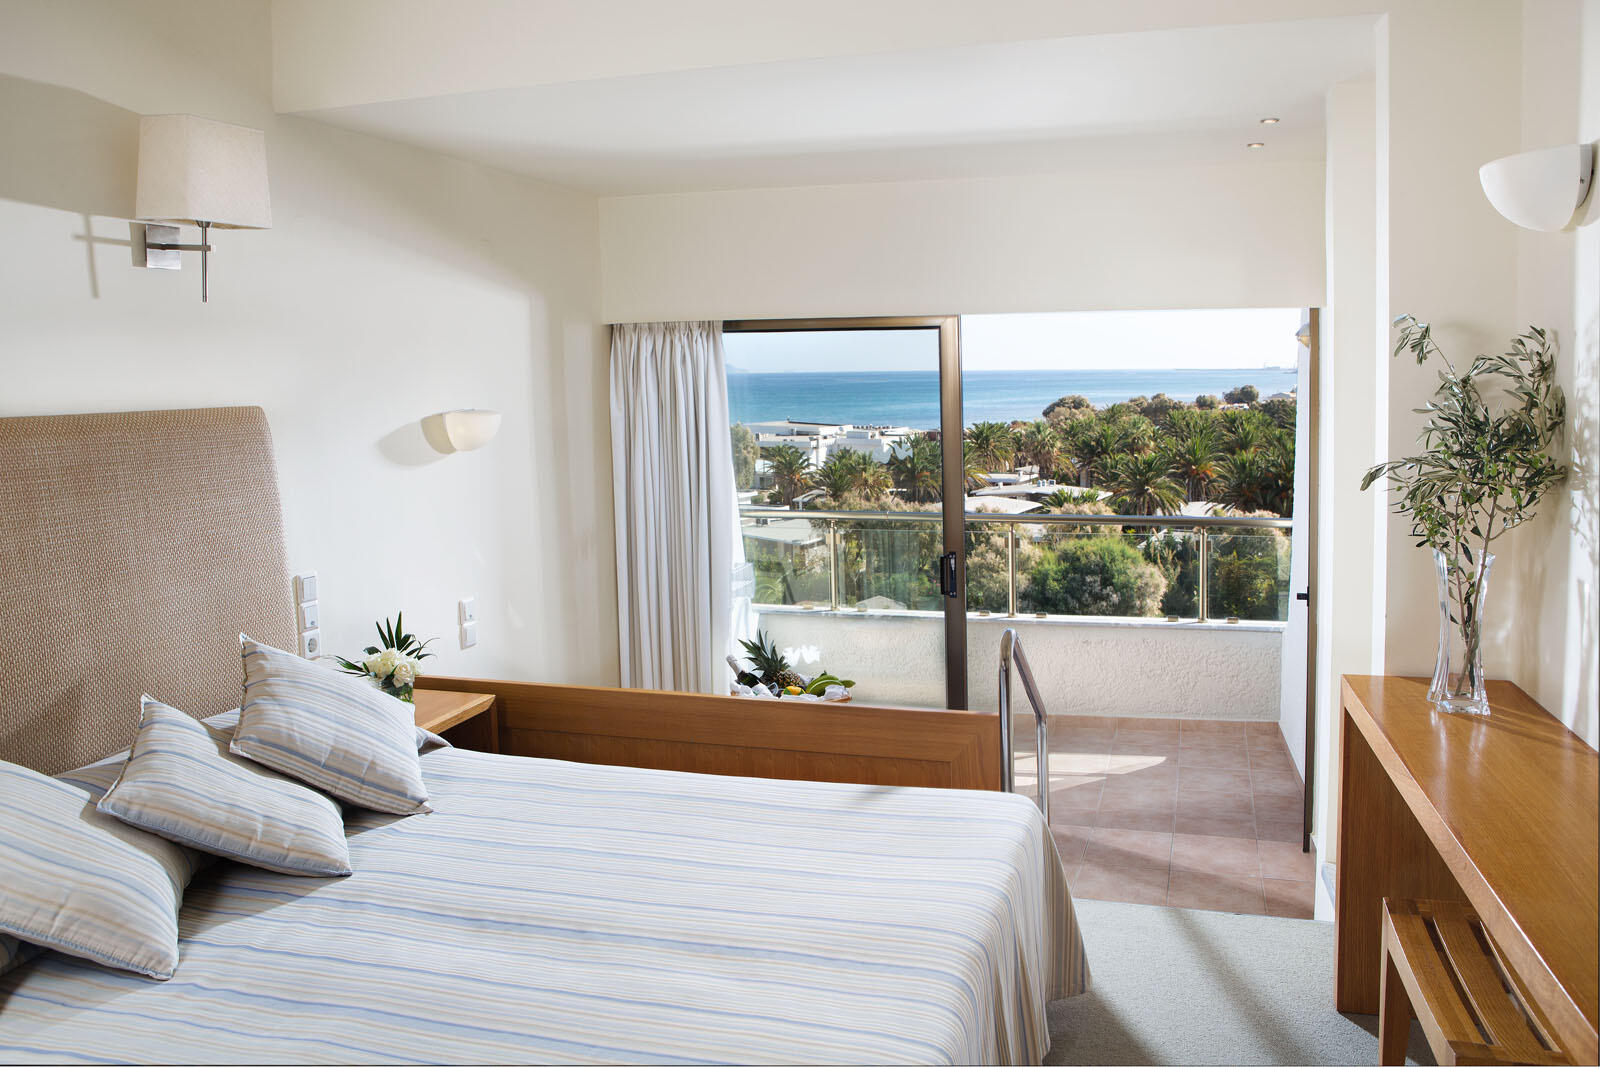 Premium Room at Agapi Beach Resort in Crete